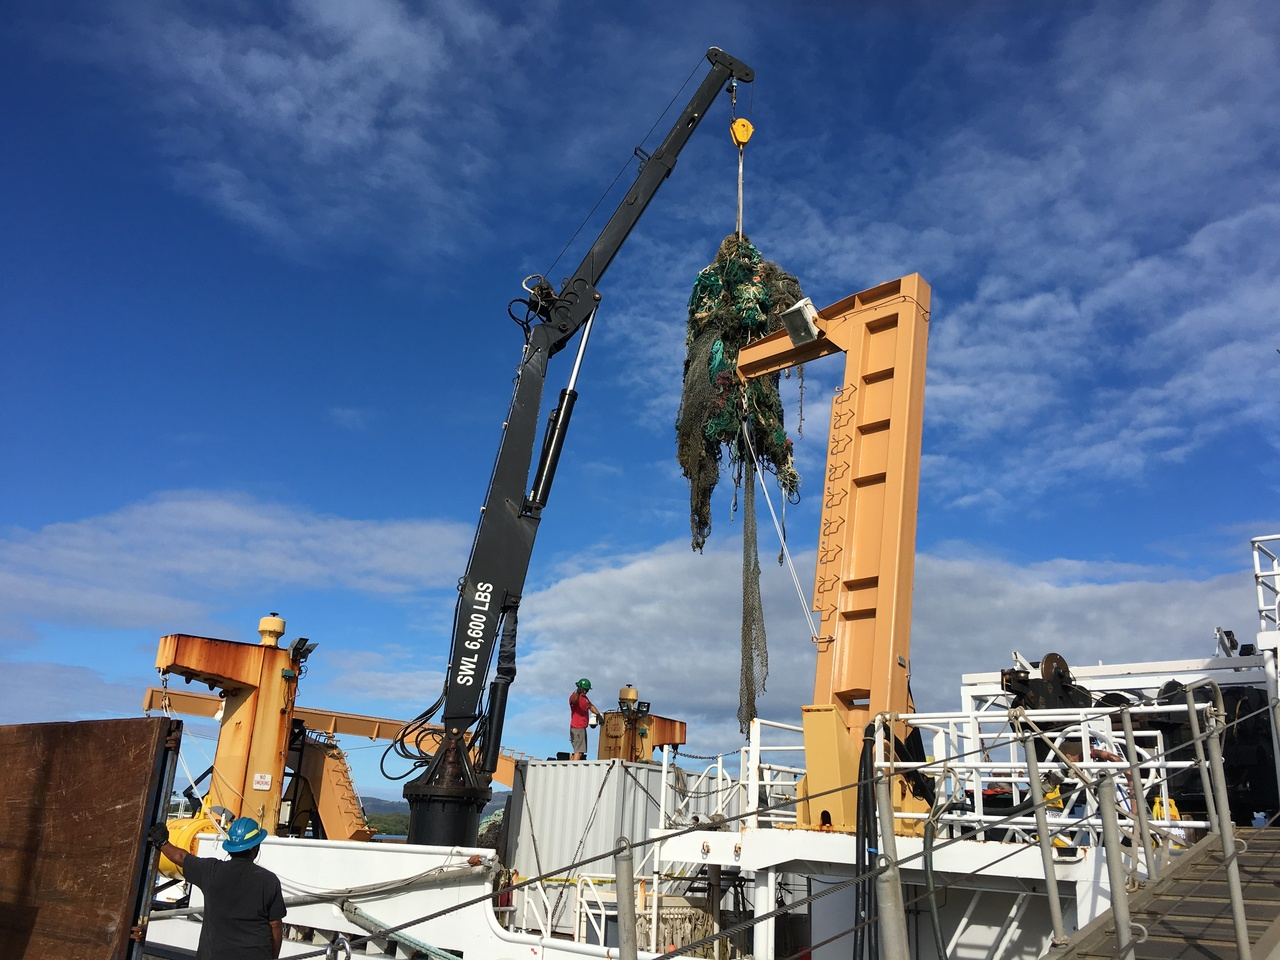 NOAA Ship Sette has safely returned to Pearl Harbor and offloaded the marine debris from the reef at Pearl and Hermes Atoll. Thanks to the ship's crew and help from other NOAA staff, the offload went smoothly. (Photo: NOAA Fisheries/Tomoko Acoba)